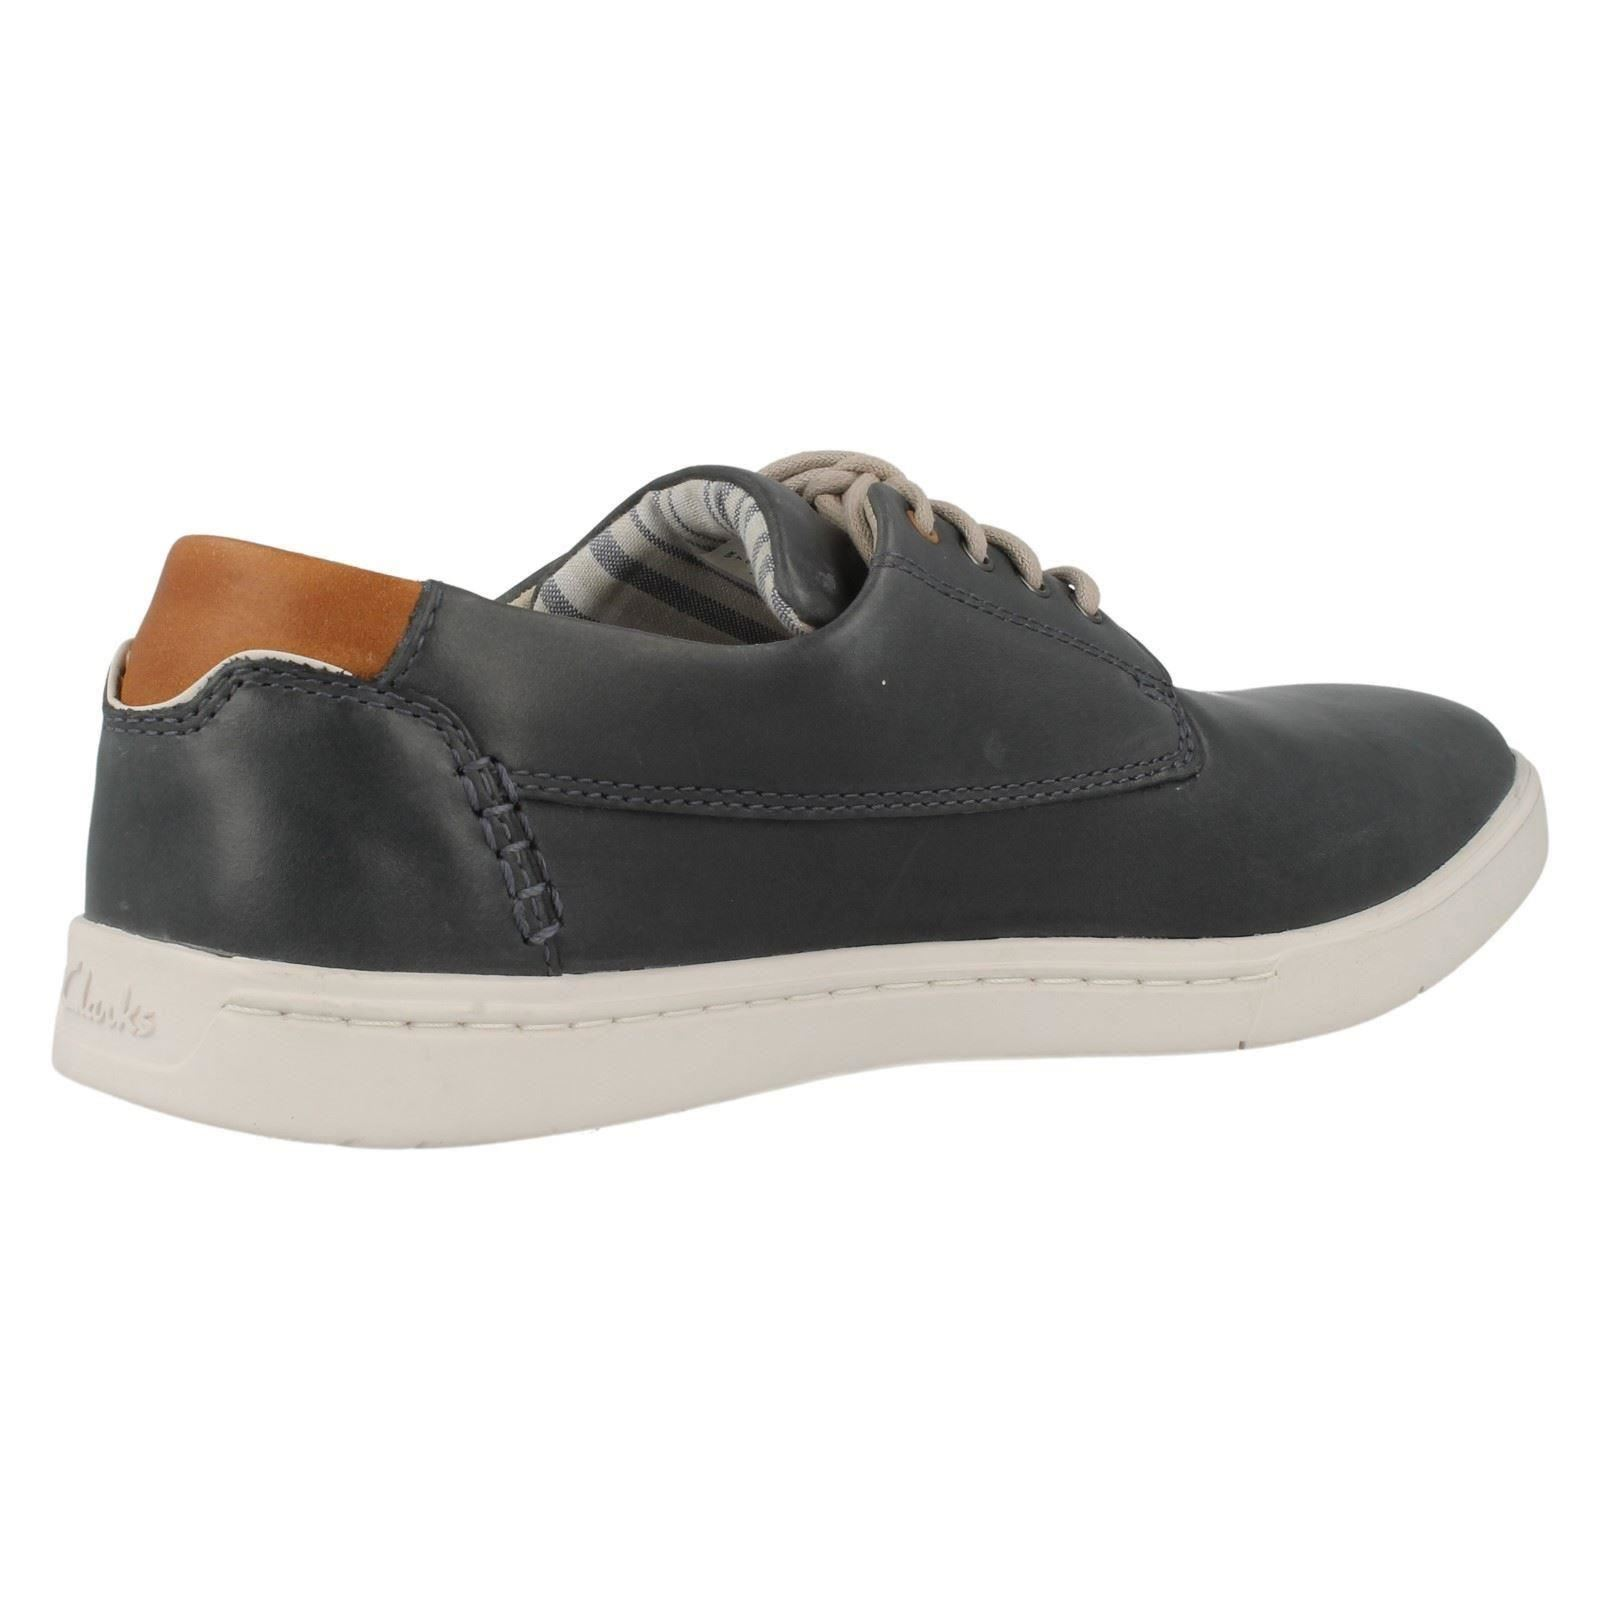 Up Uomo Clarks Casual Lace Up  Schuhes Newood Fly bee14e